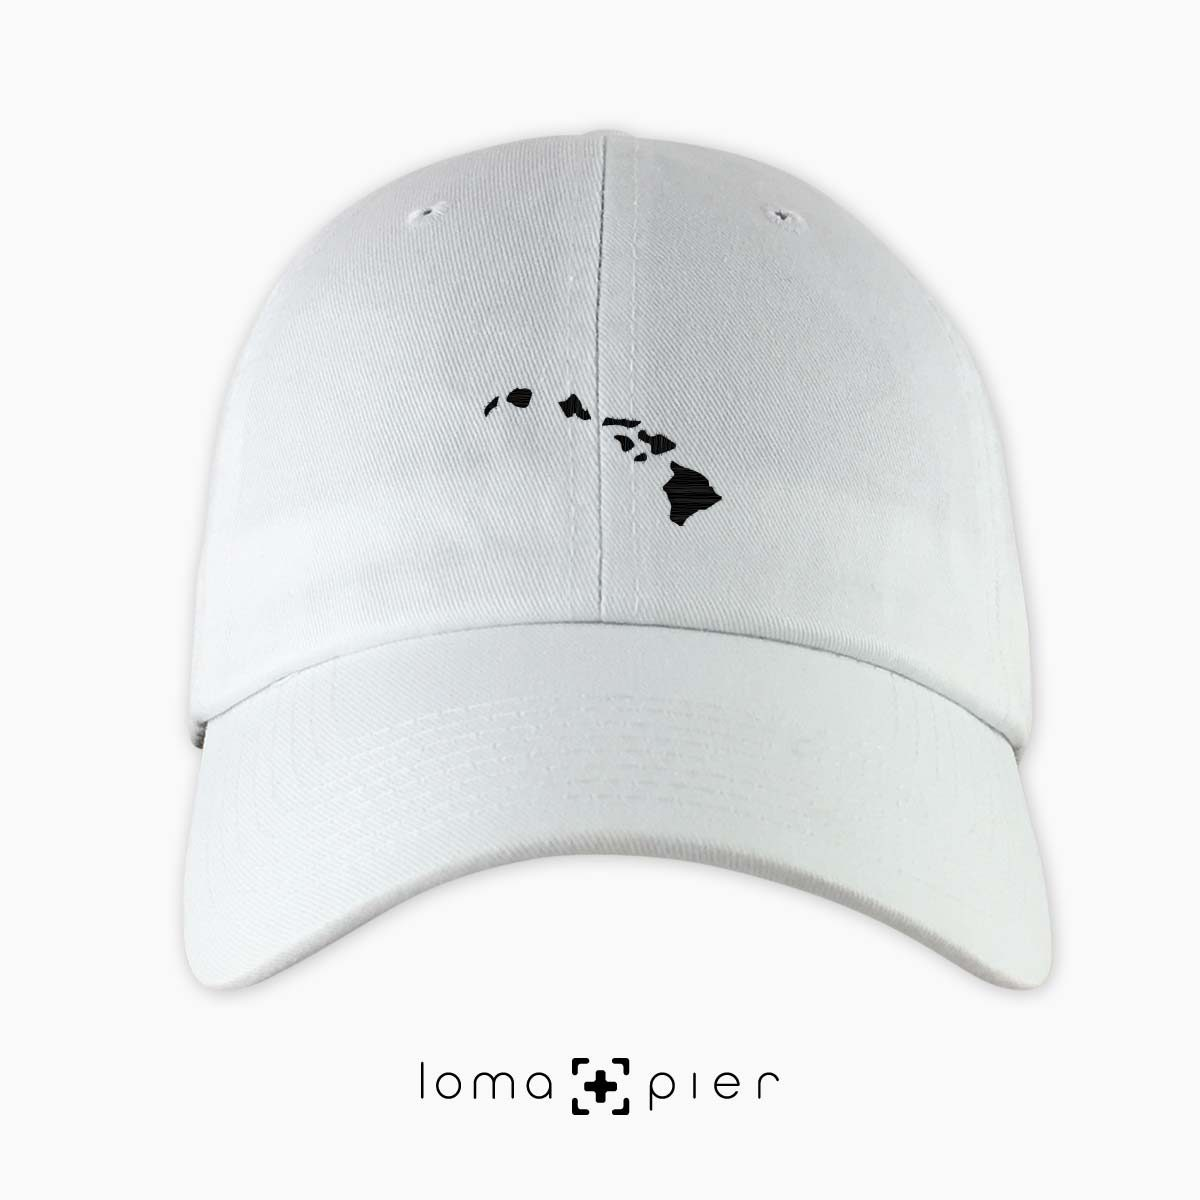 HAWAIIAN ISLANDS icon embroidered on a white hawaii dad hat by loma+pier hat store made in the USA